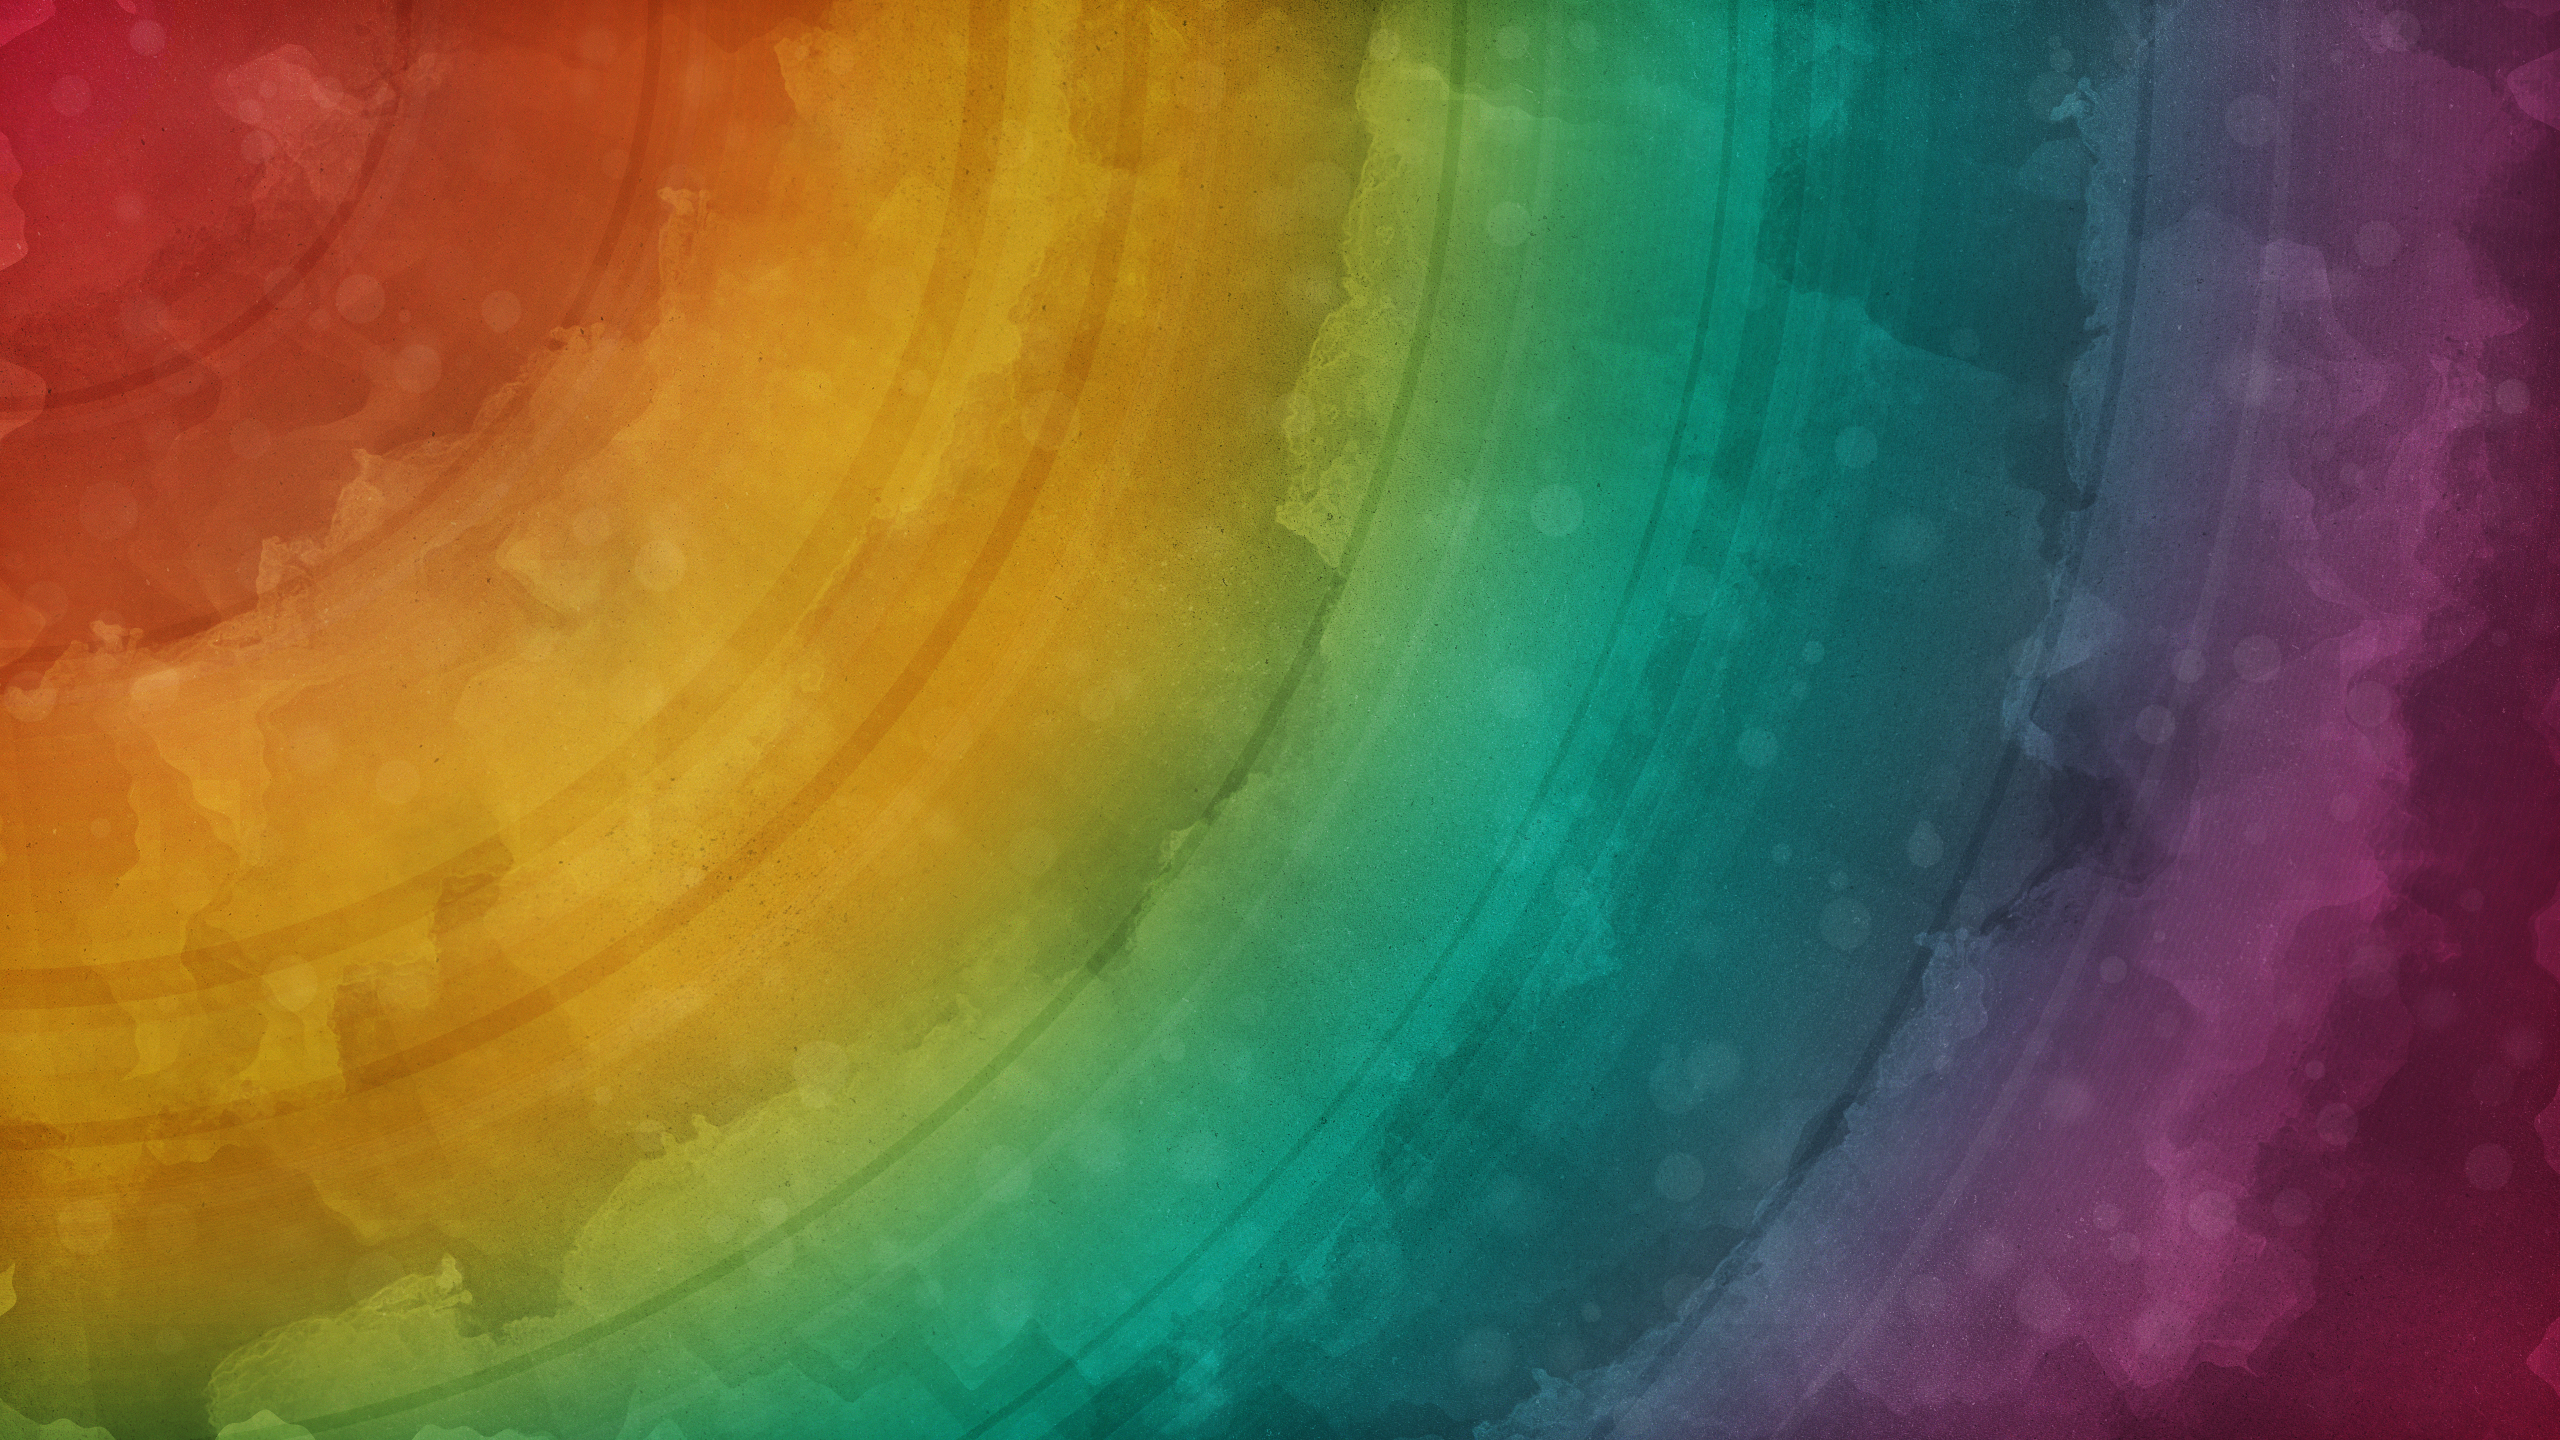 Rainbow Color Splash Background Wallpaper Download Hd New